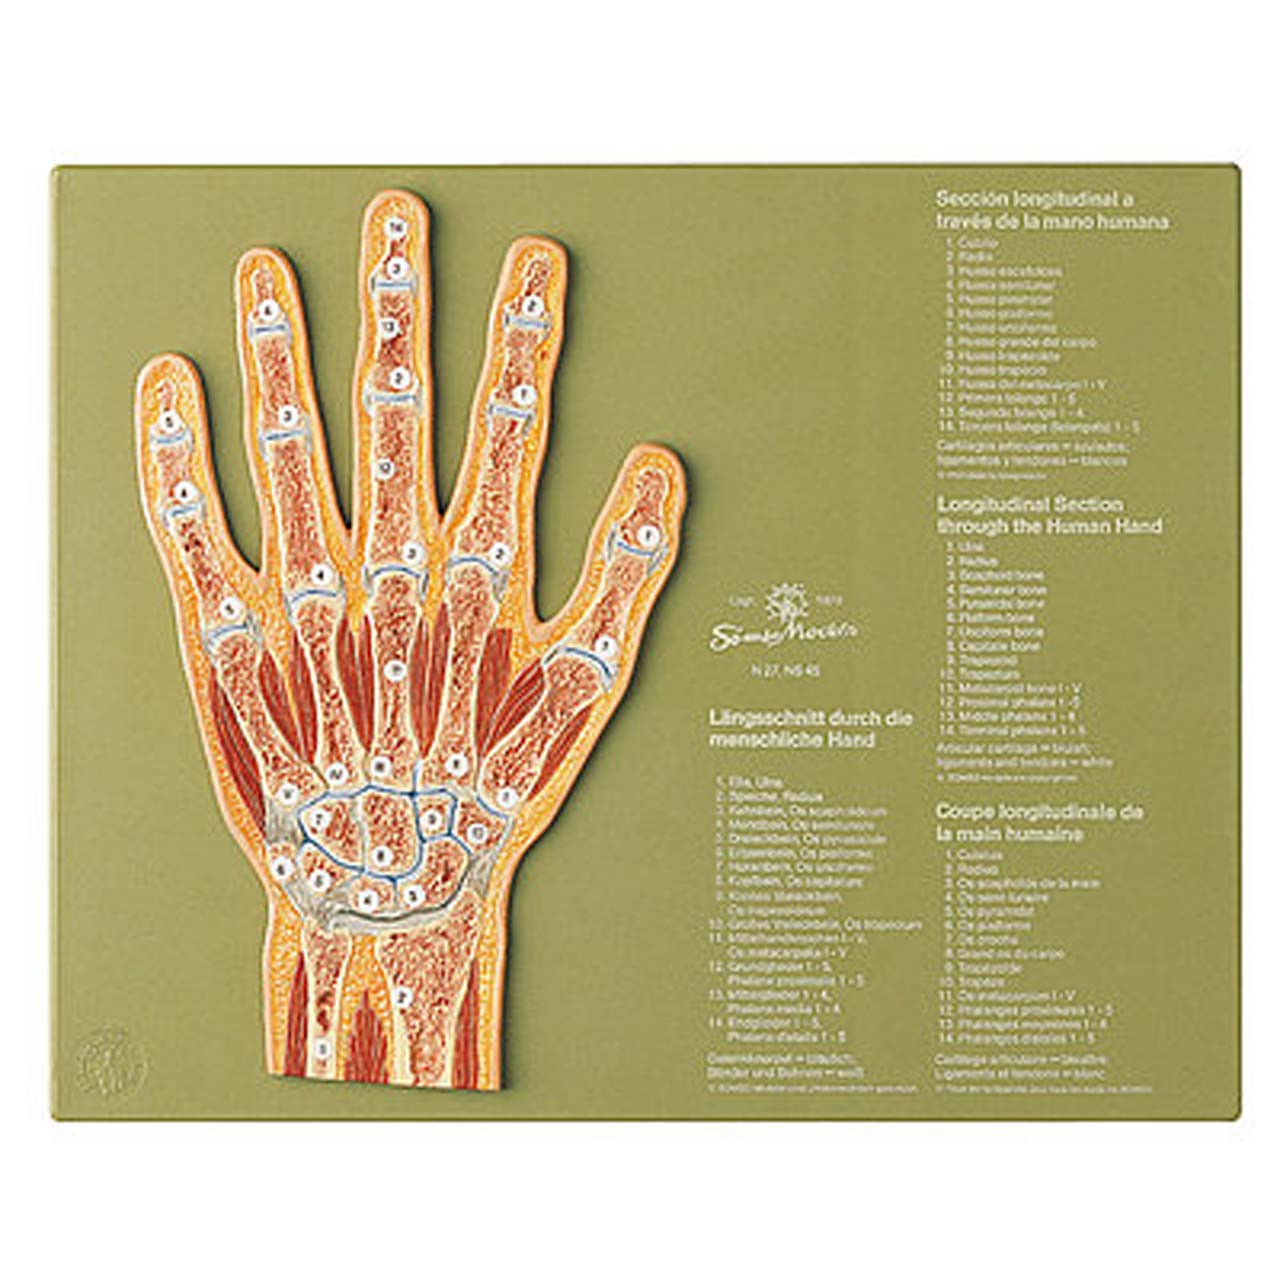 NS45 - Section through the Hand